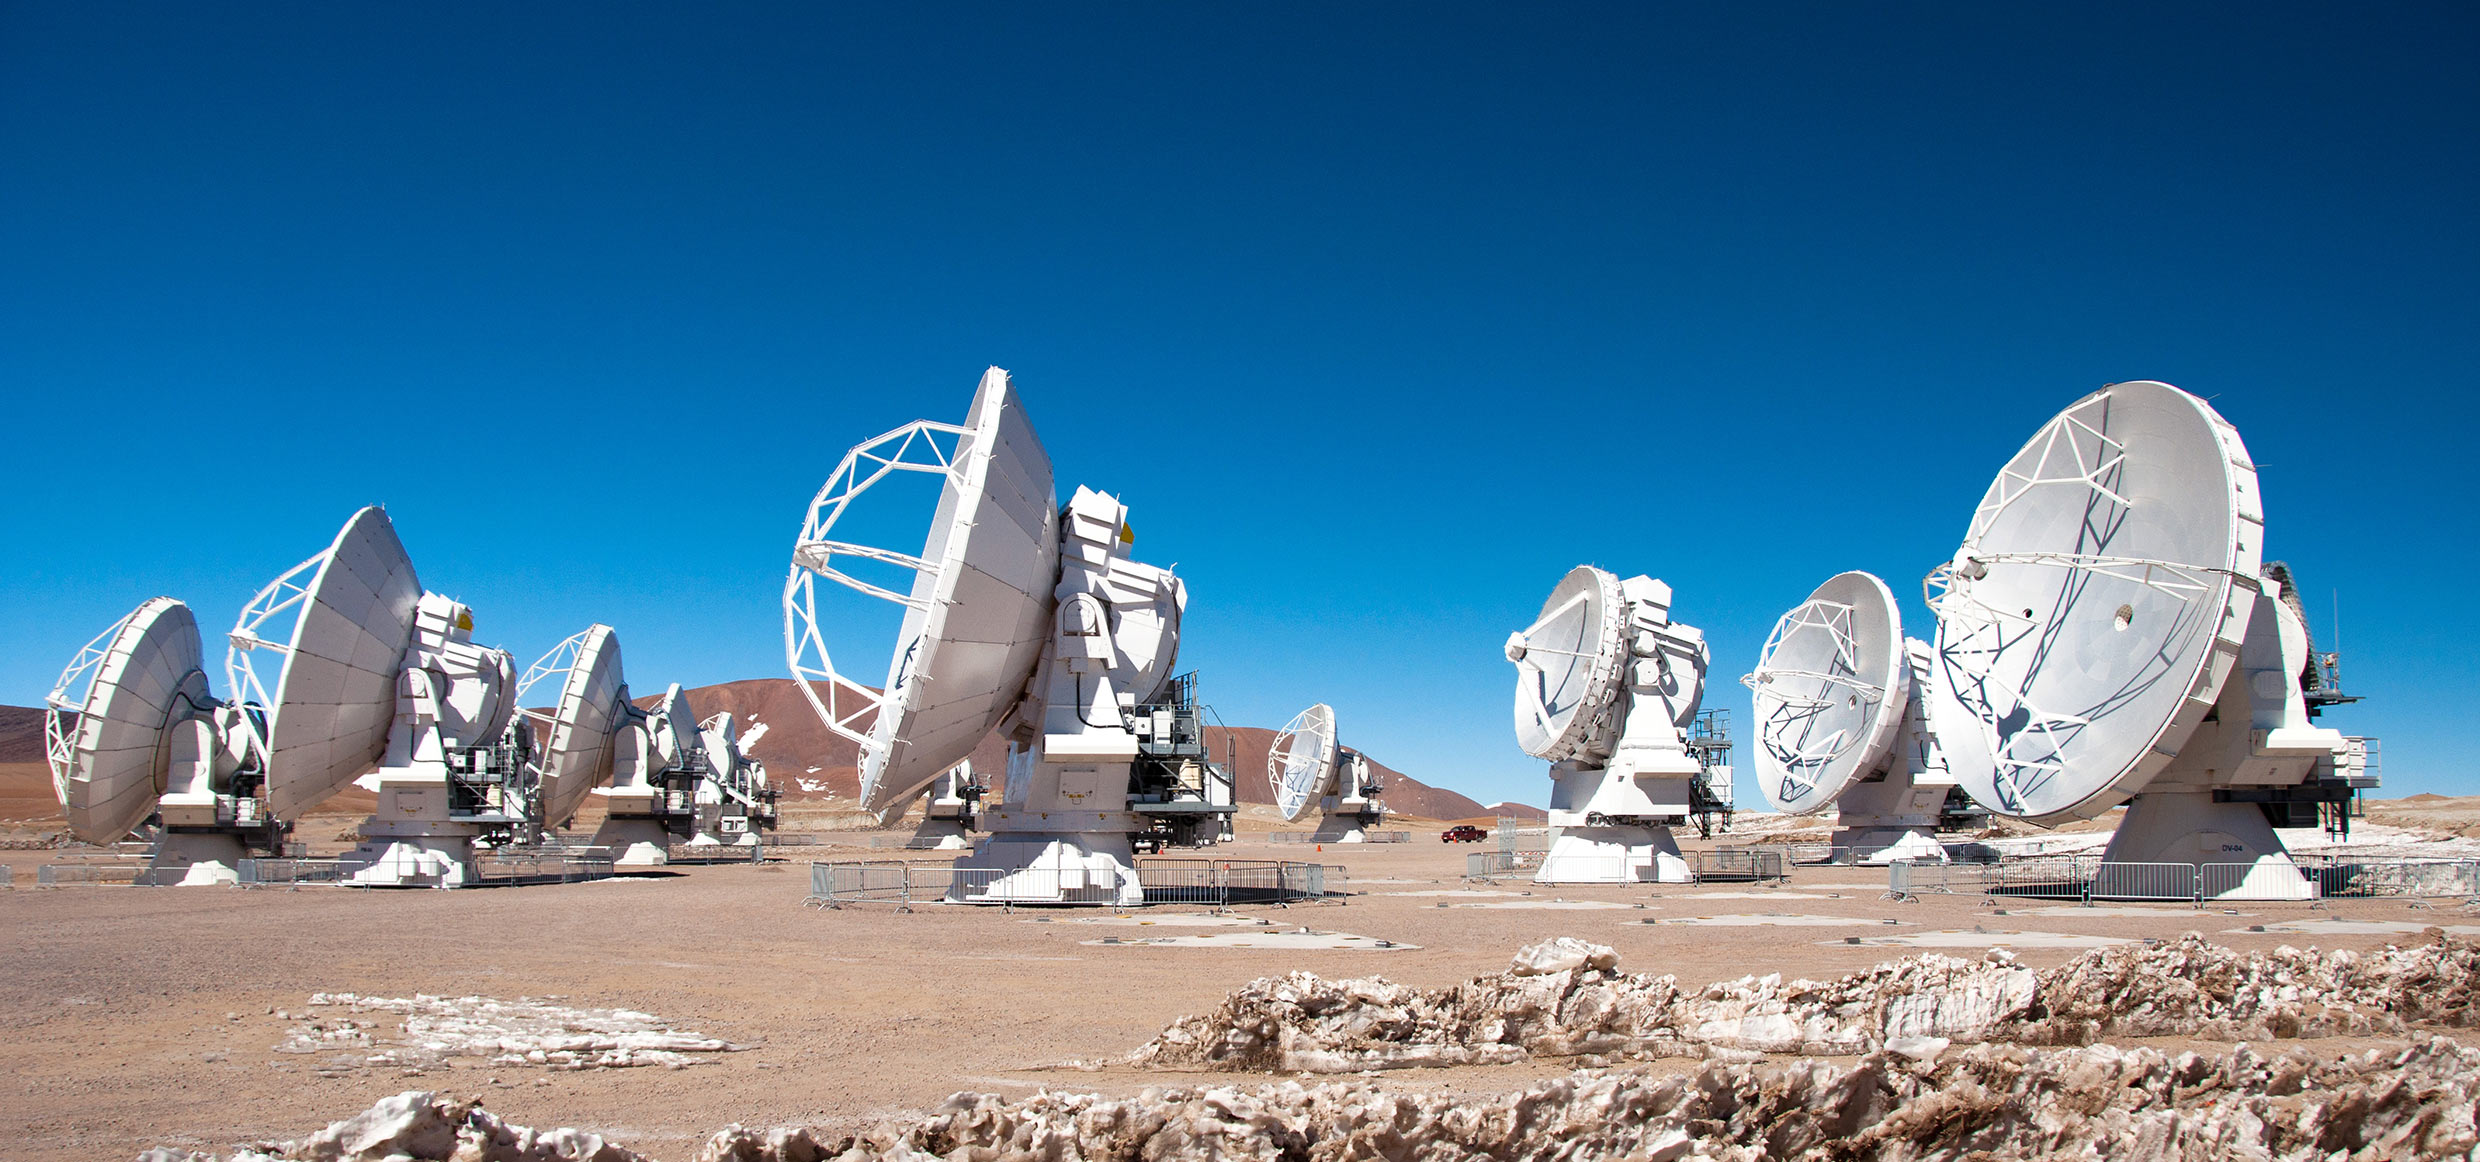 Several radio telescope dishes all pointed towards the left, standing on pale Earth and against a blue sky